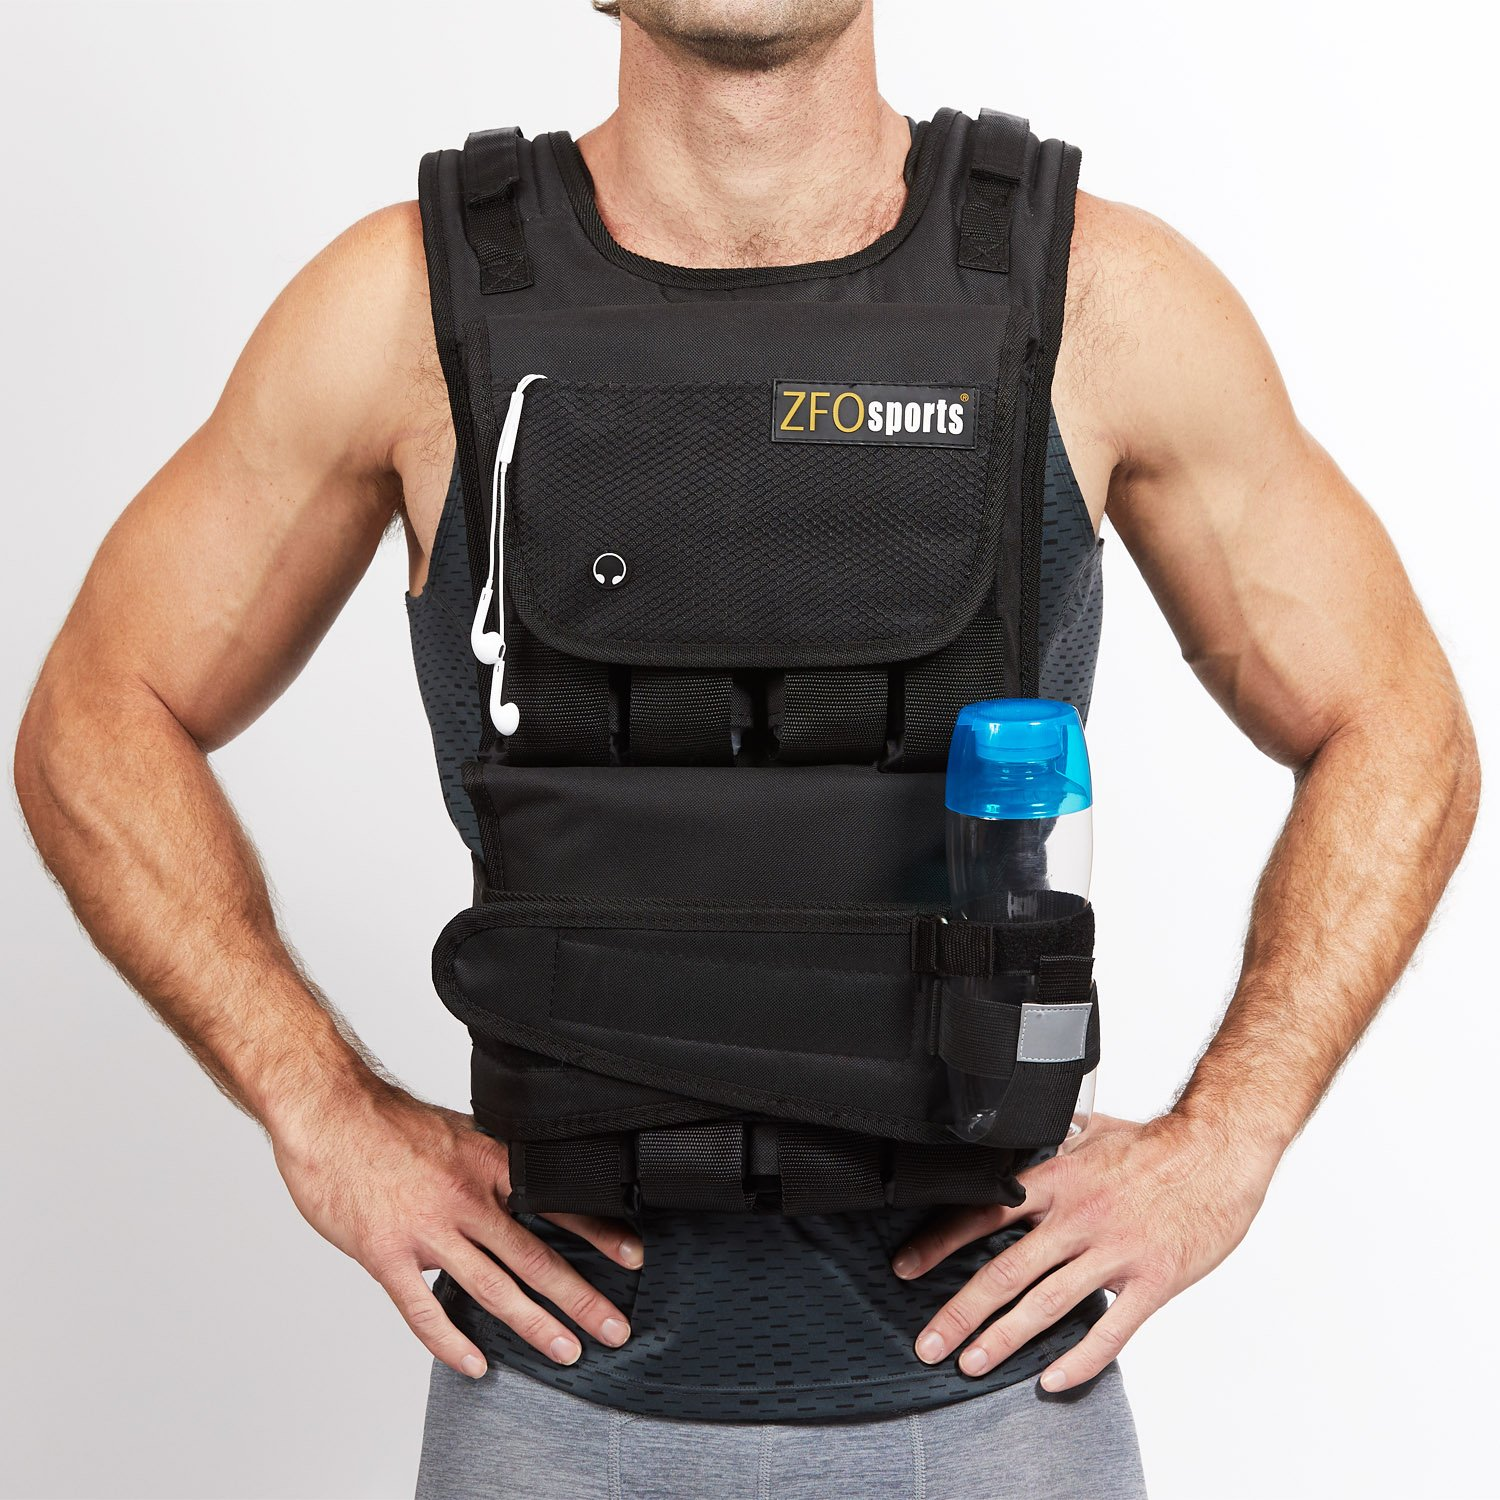 ZFOsports Weighted Vest 20lbs – 80lbs